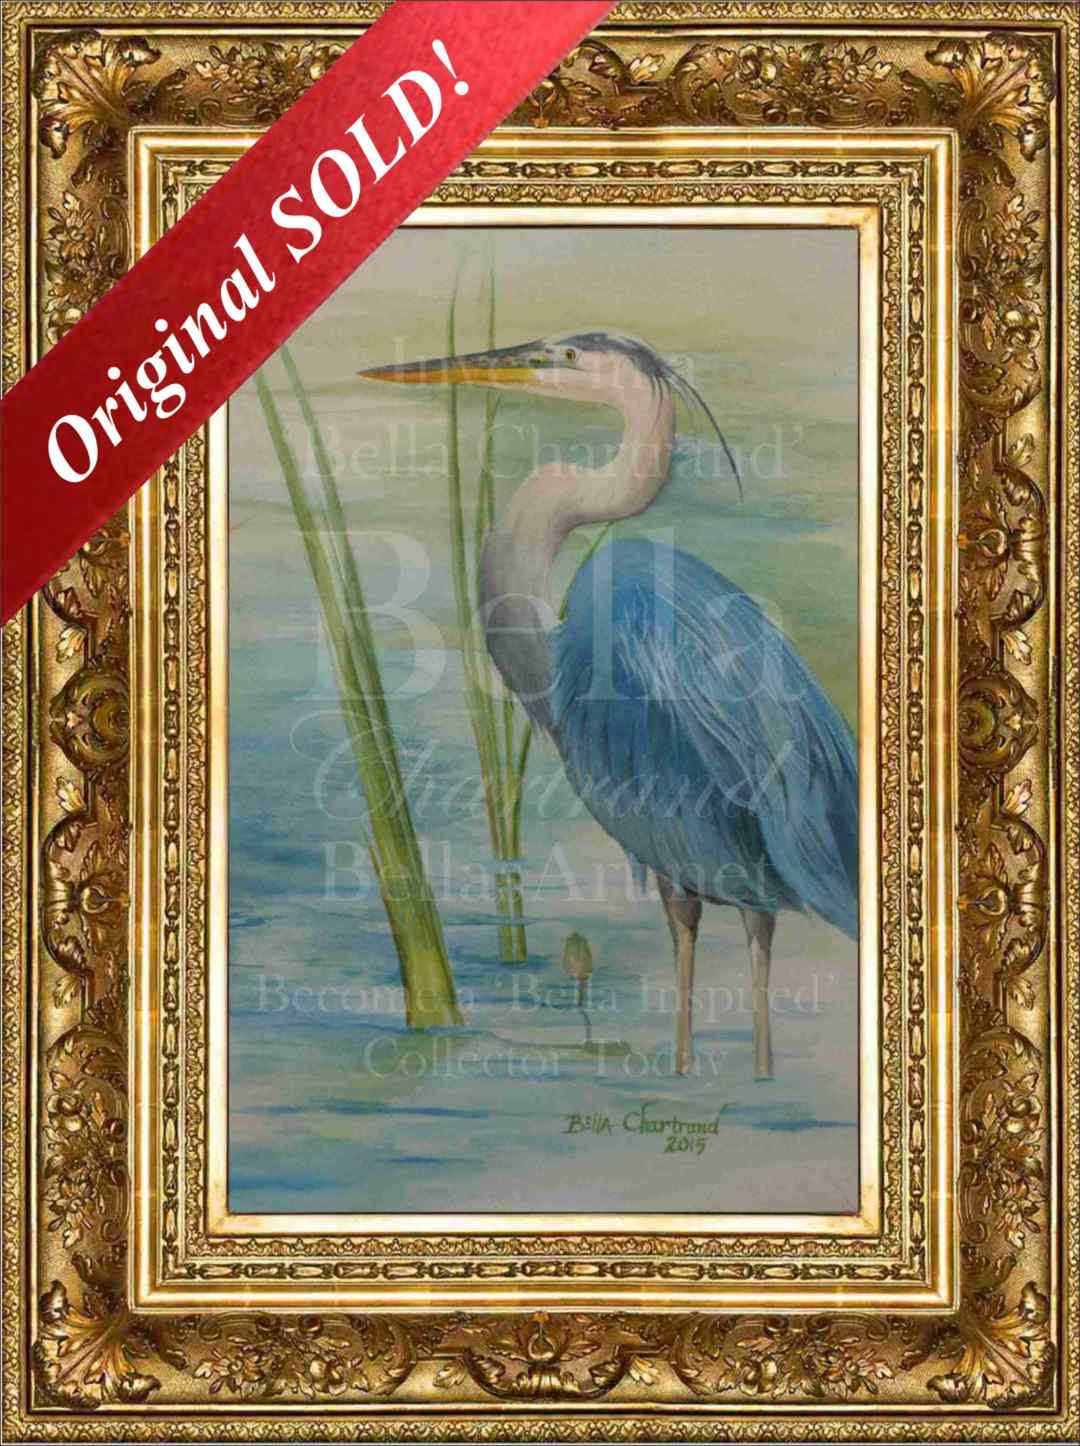 Bella Blue Heron from Bella Inspired Wildlife Collection by Bella Chartrand from Utopia USA